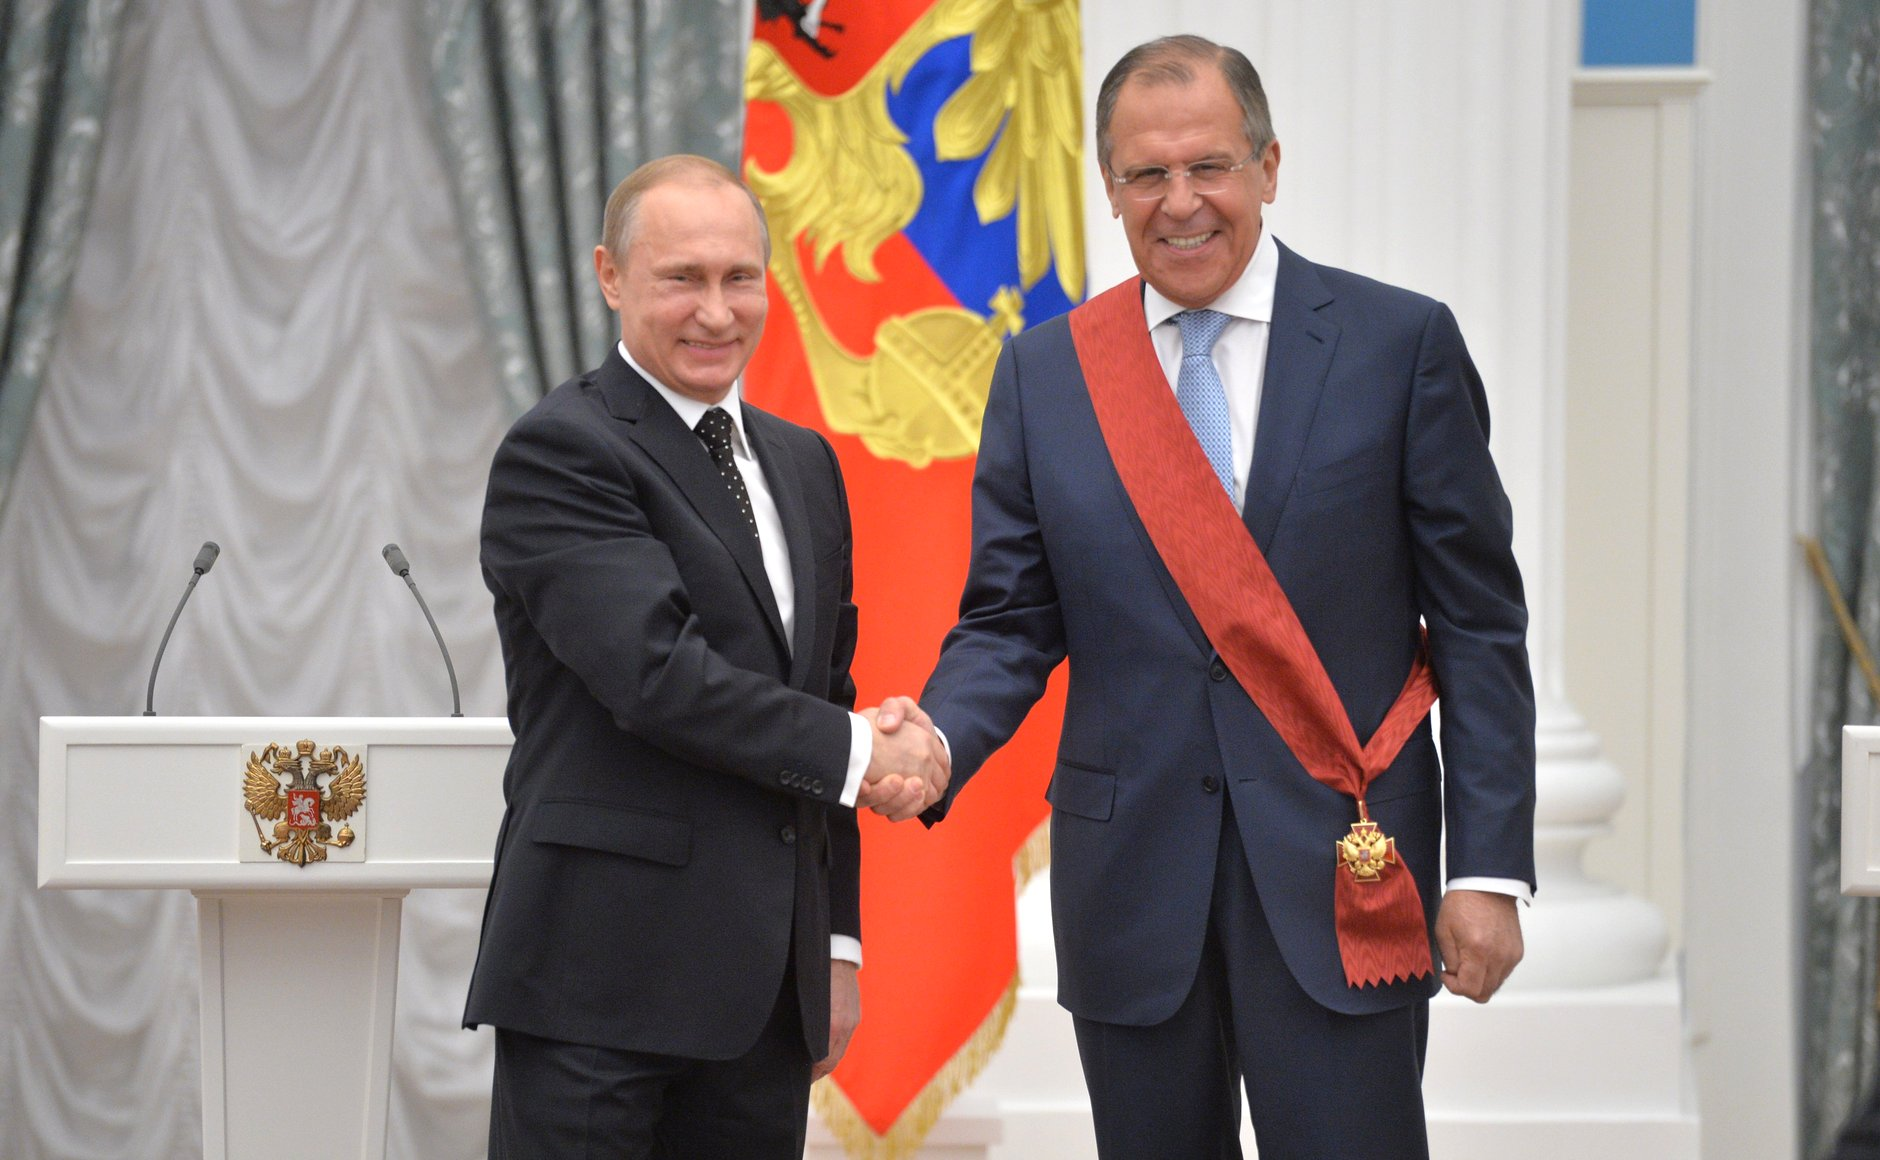 Vladimir Putin and Sergey Lavrov at award ceremony. Moscow, Kremlin. 21 May 2015.